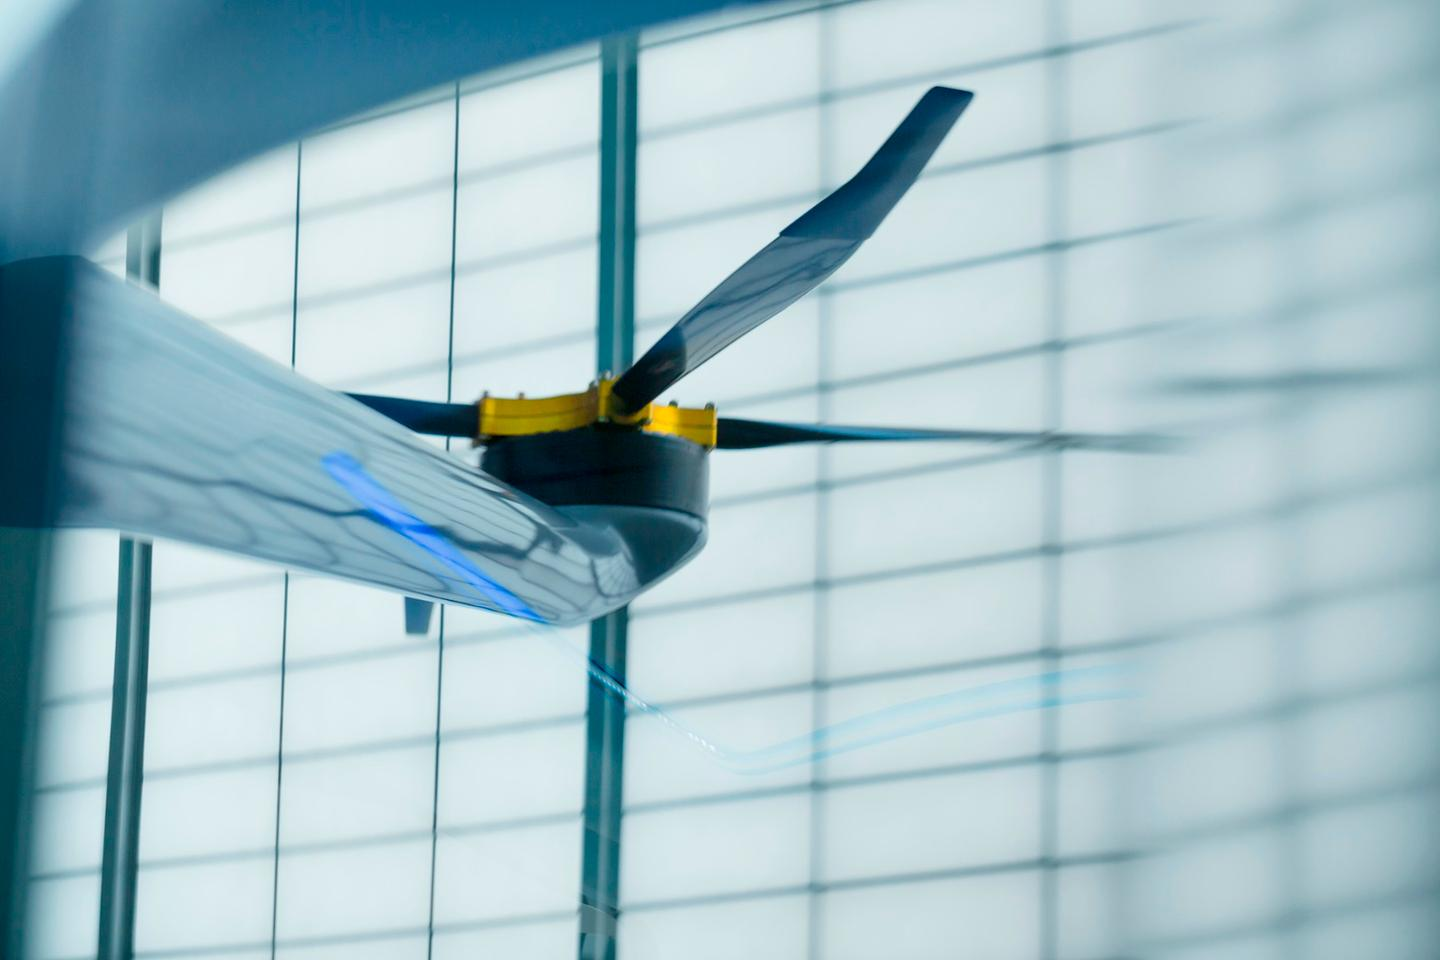 Alaka'i Technologies' Skai  uses single large carbon props